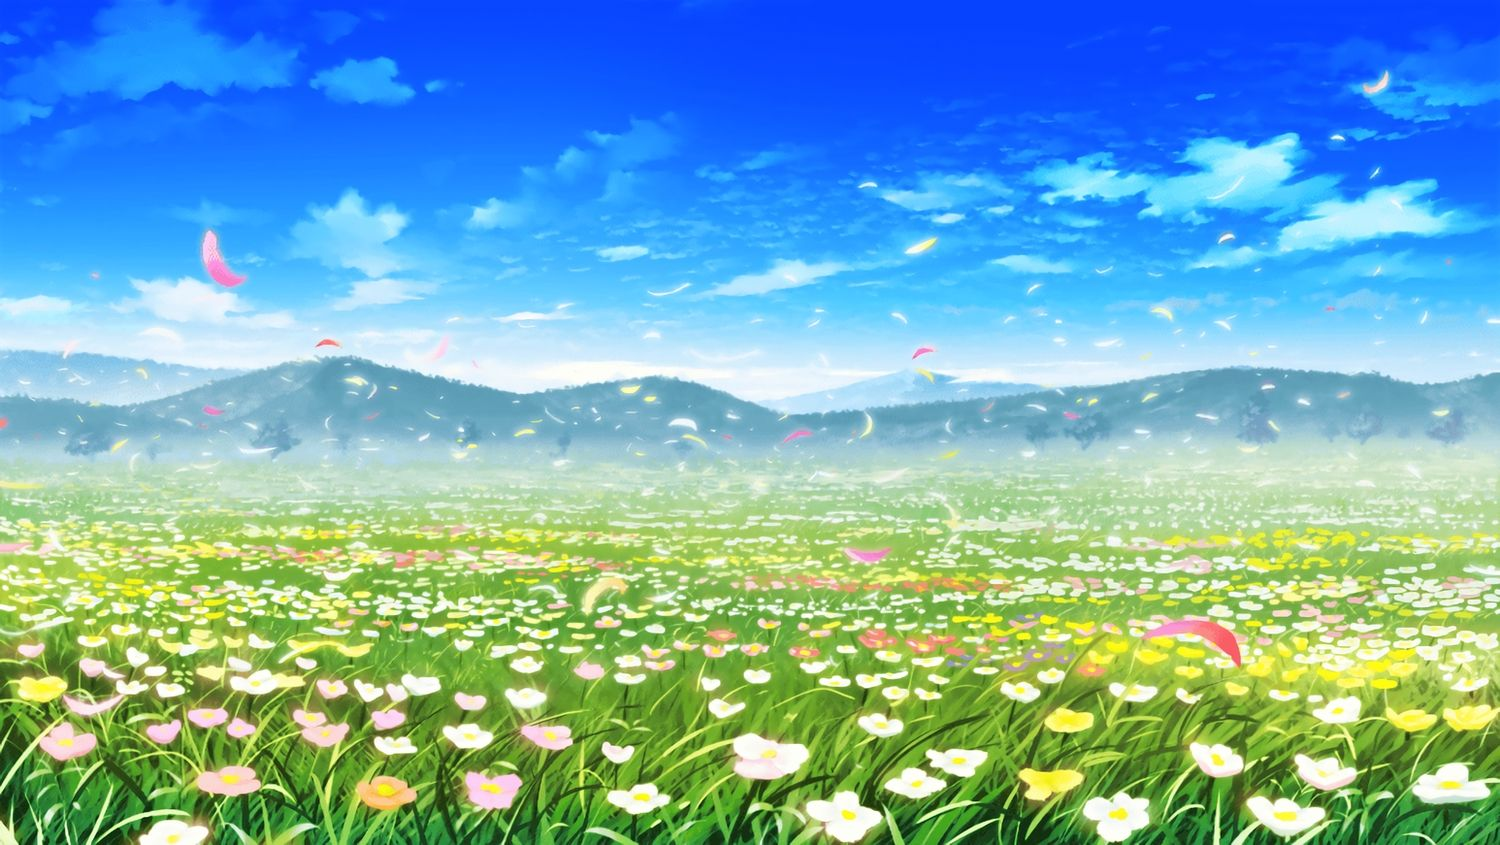 Clouds Flowers Grass Landscape Nobody Petals Scenic Sky Tagme Artist Anime Backgrounds Wallpapers Anime Background Anime Scenery